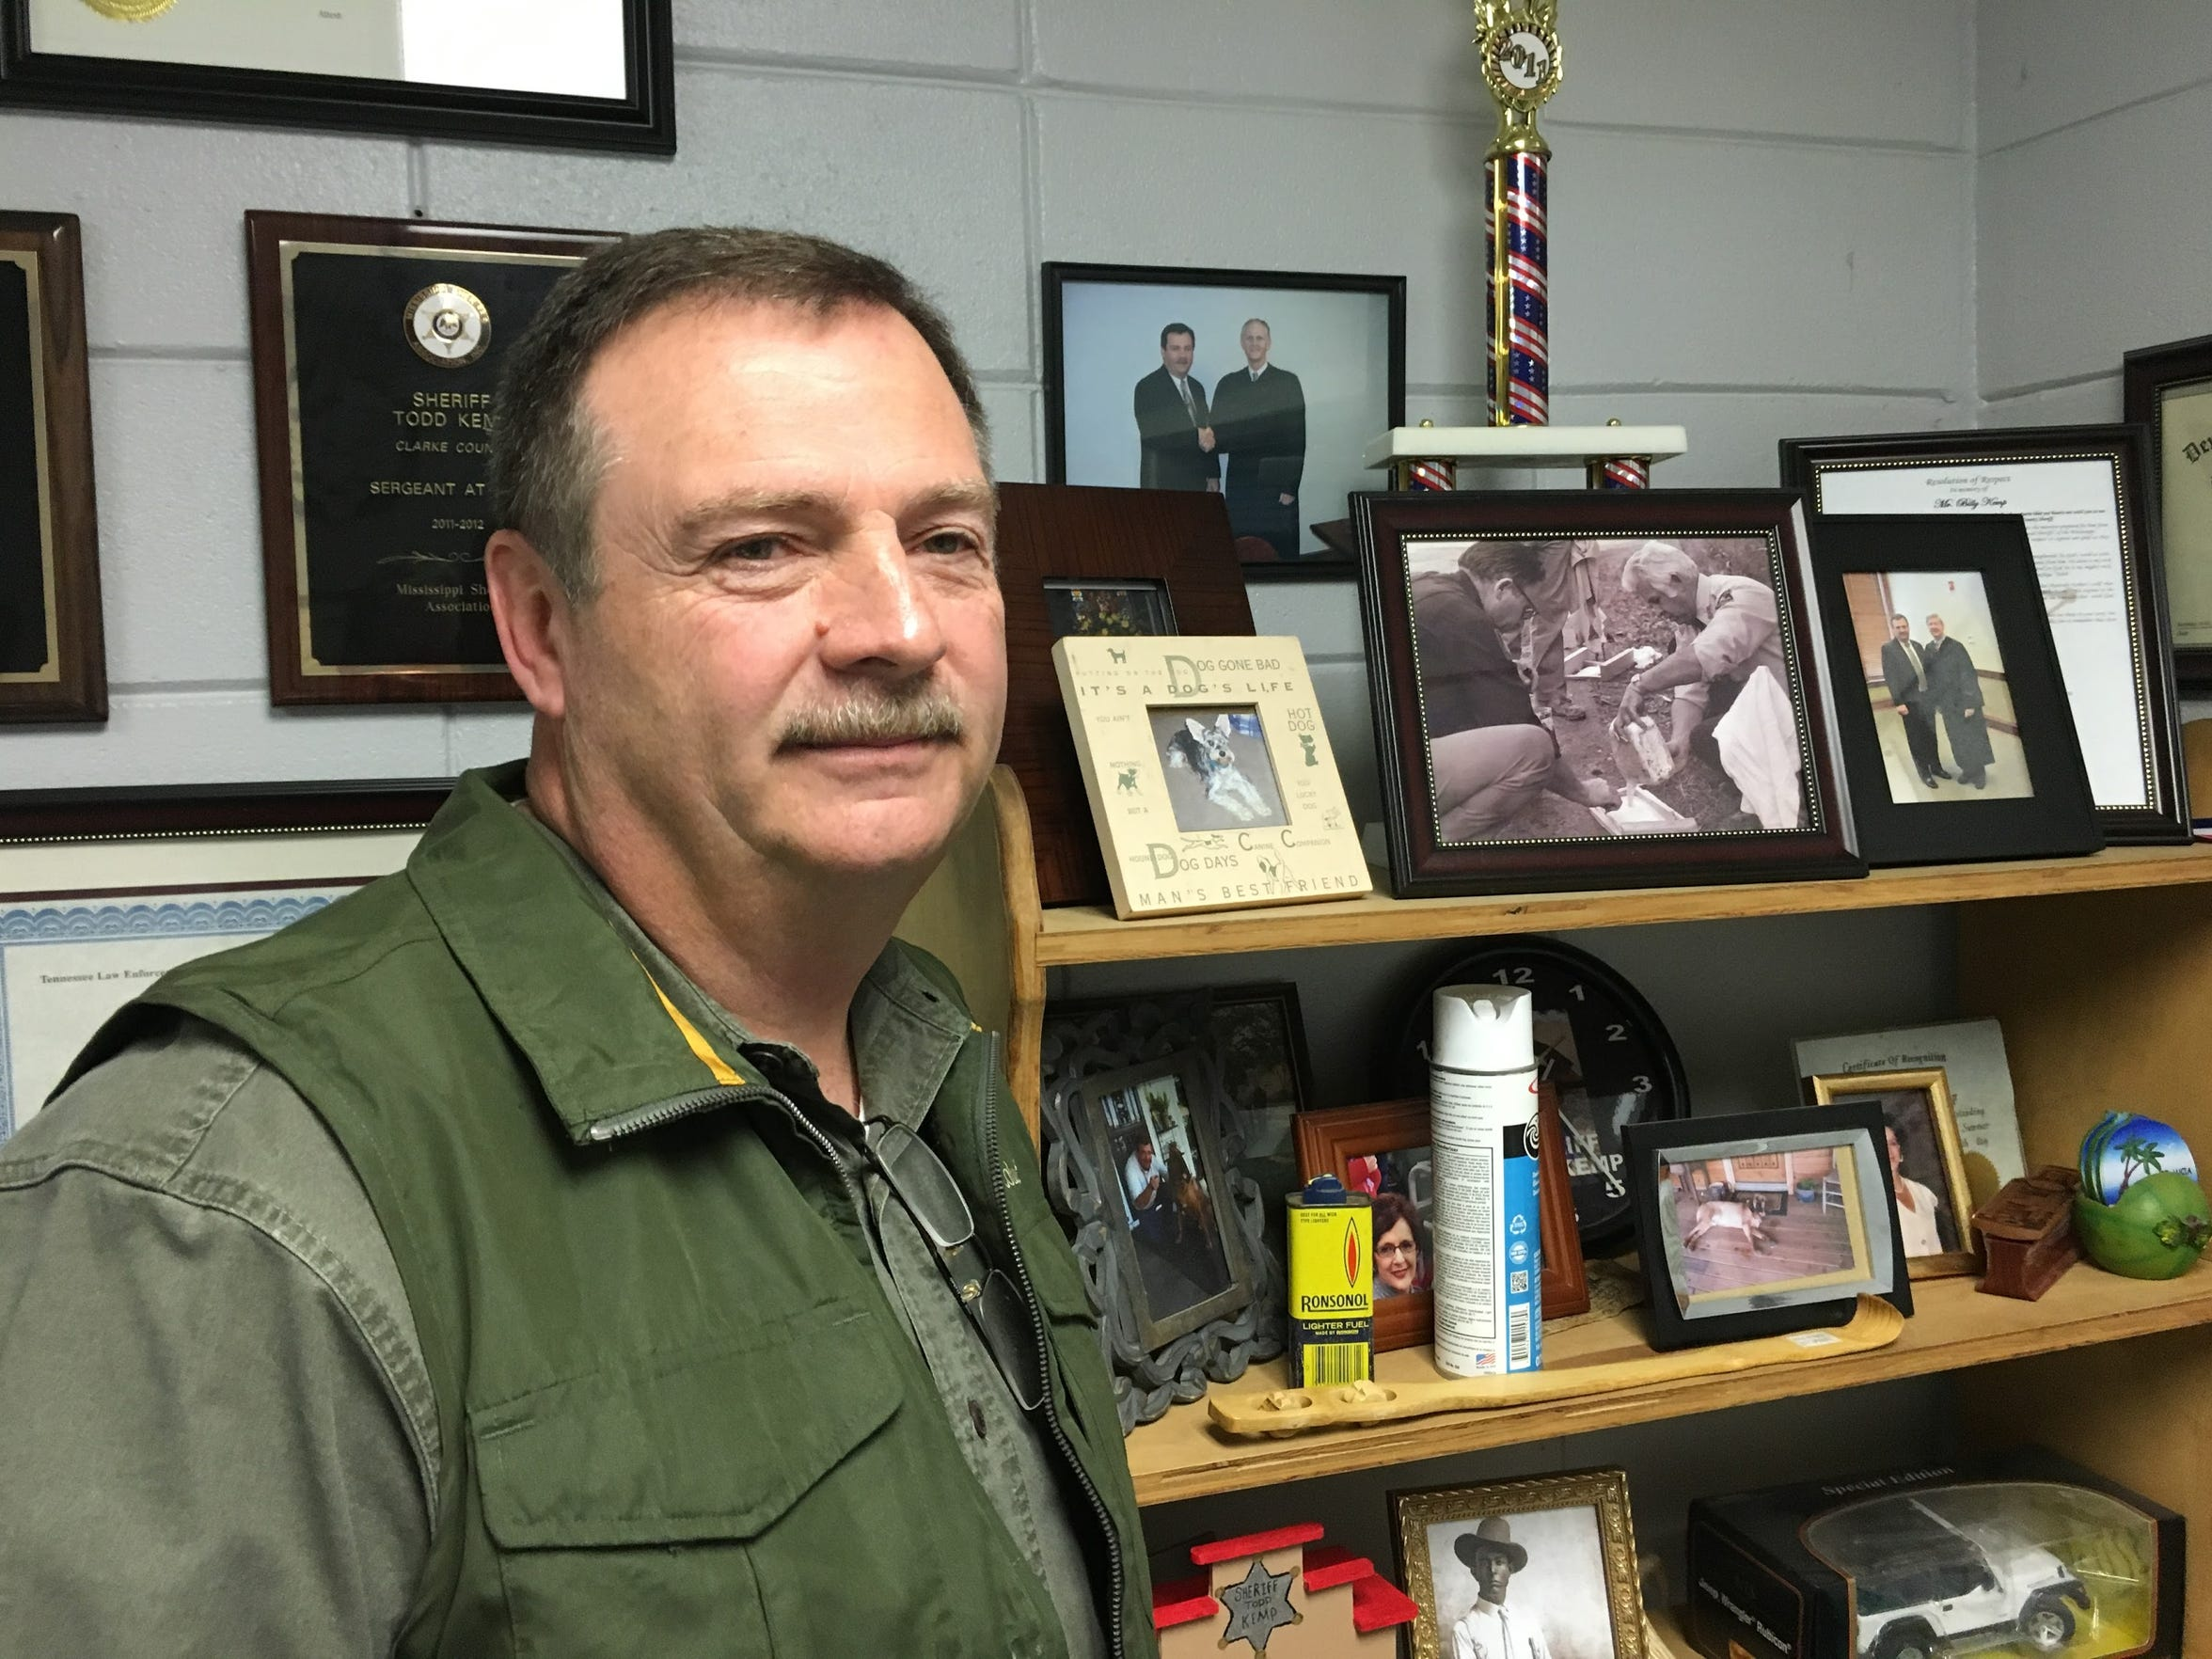 Clarke County Sheriff Todd Kemp stands in his office. A black-and-white photograph of his father, Billy Ray Kemp, longtime police chief for Quitman, can be seen on the top shelf.